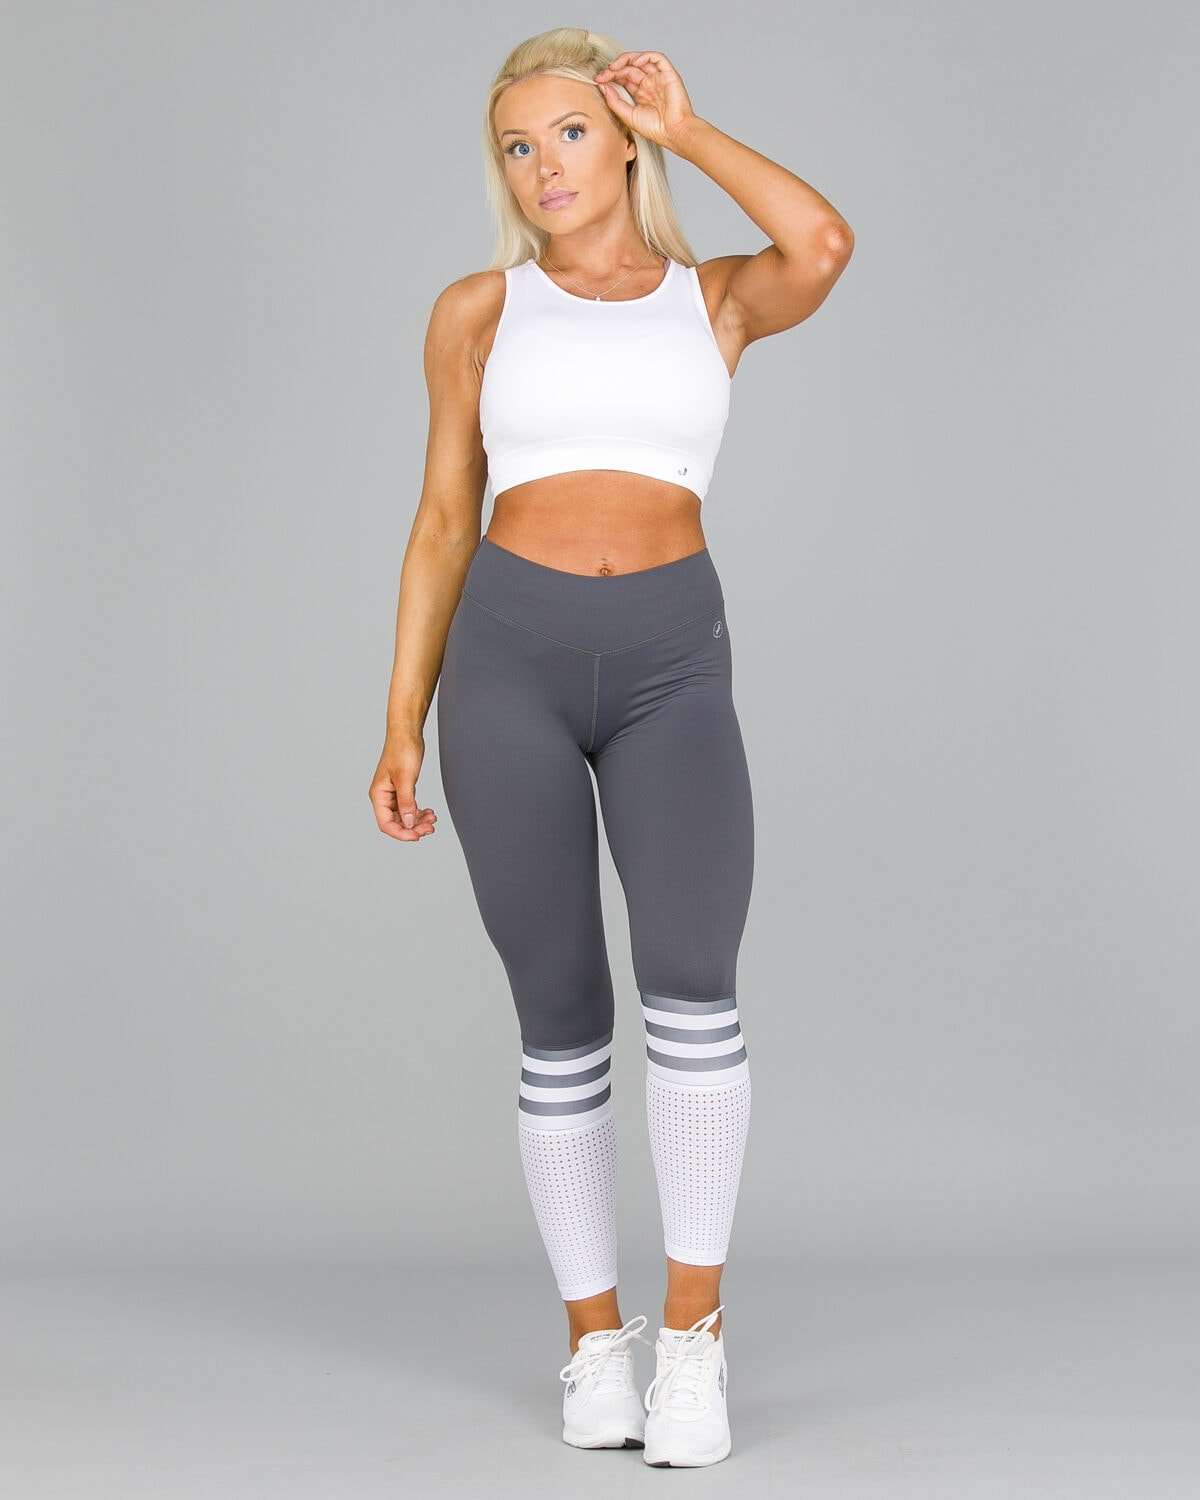 ABS2B-Fitness-Regular-Rise-Mom-Soccer-Mesh-Leggings-Grey5-1200×1500